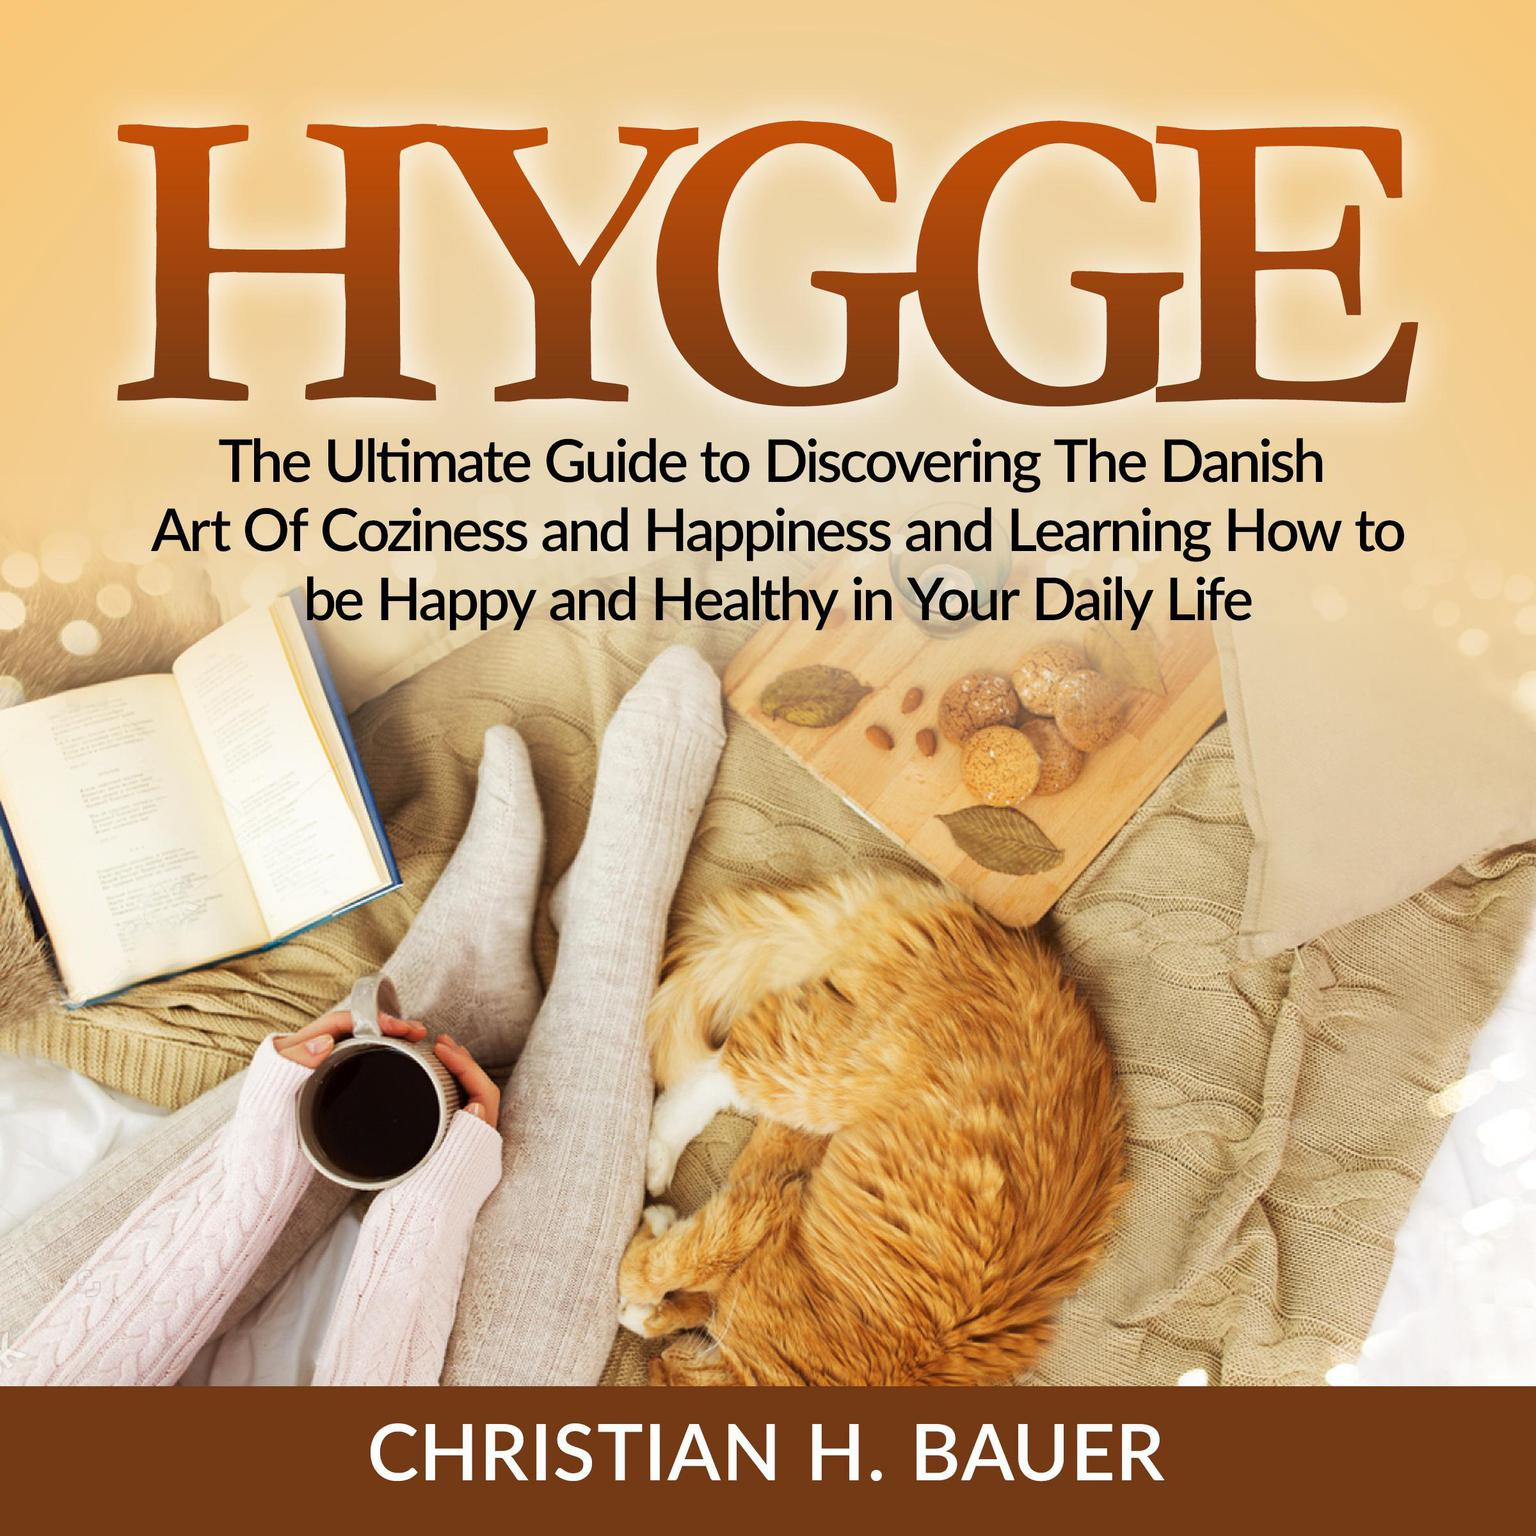 Printable Hygge: The Ultimate Guide to Discovering The Danish Art Of Coziness and Happiness and Learning How to be Happy and Healthy in Your Daily Life Audiobook Cover Art